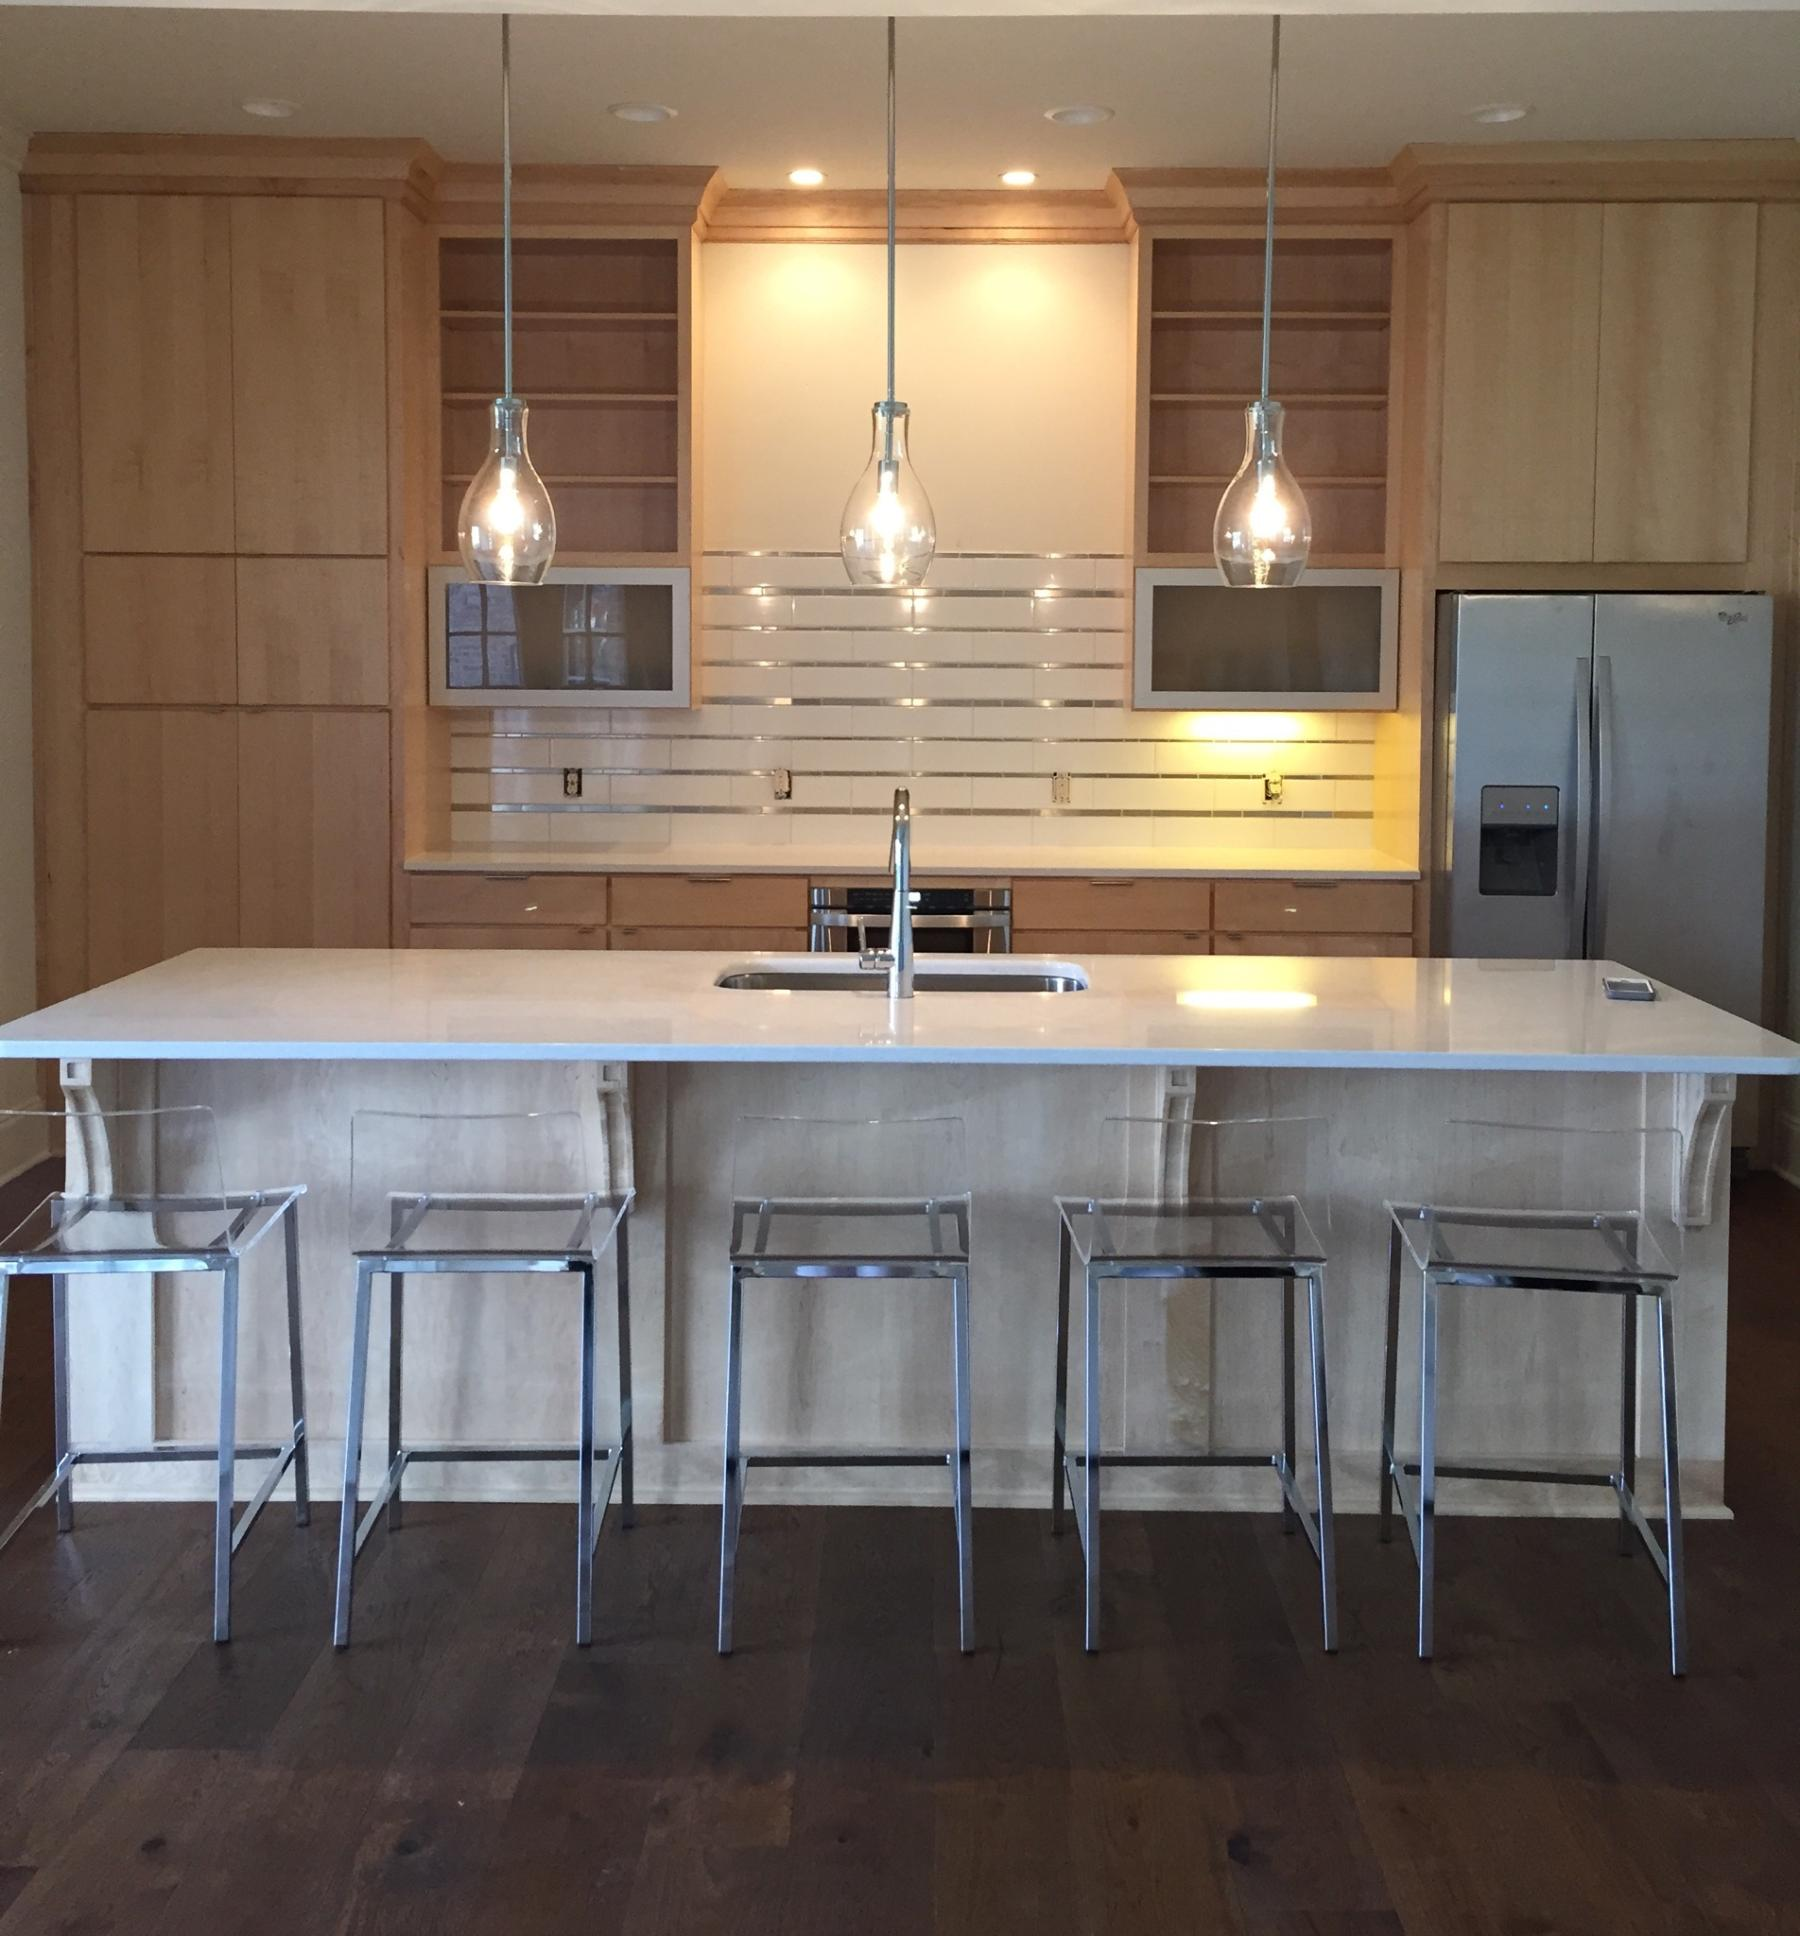 Upscale Kitchen Cabinets: Gallery Of Kitchen & Bath Cabinetry